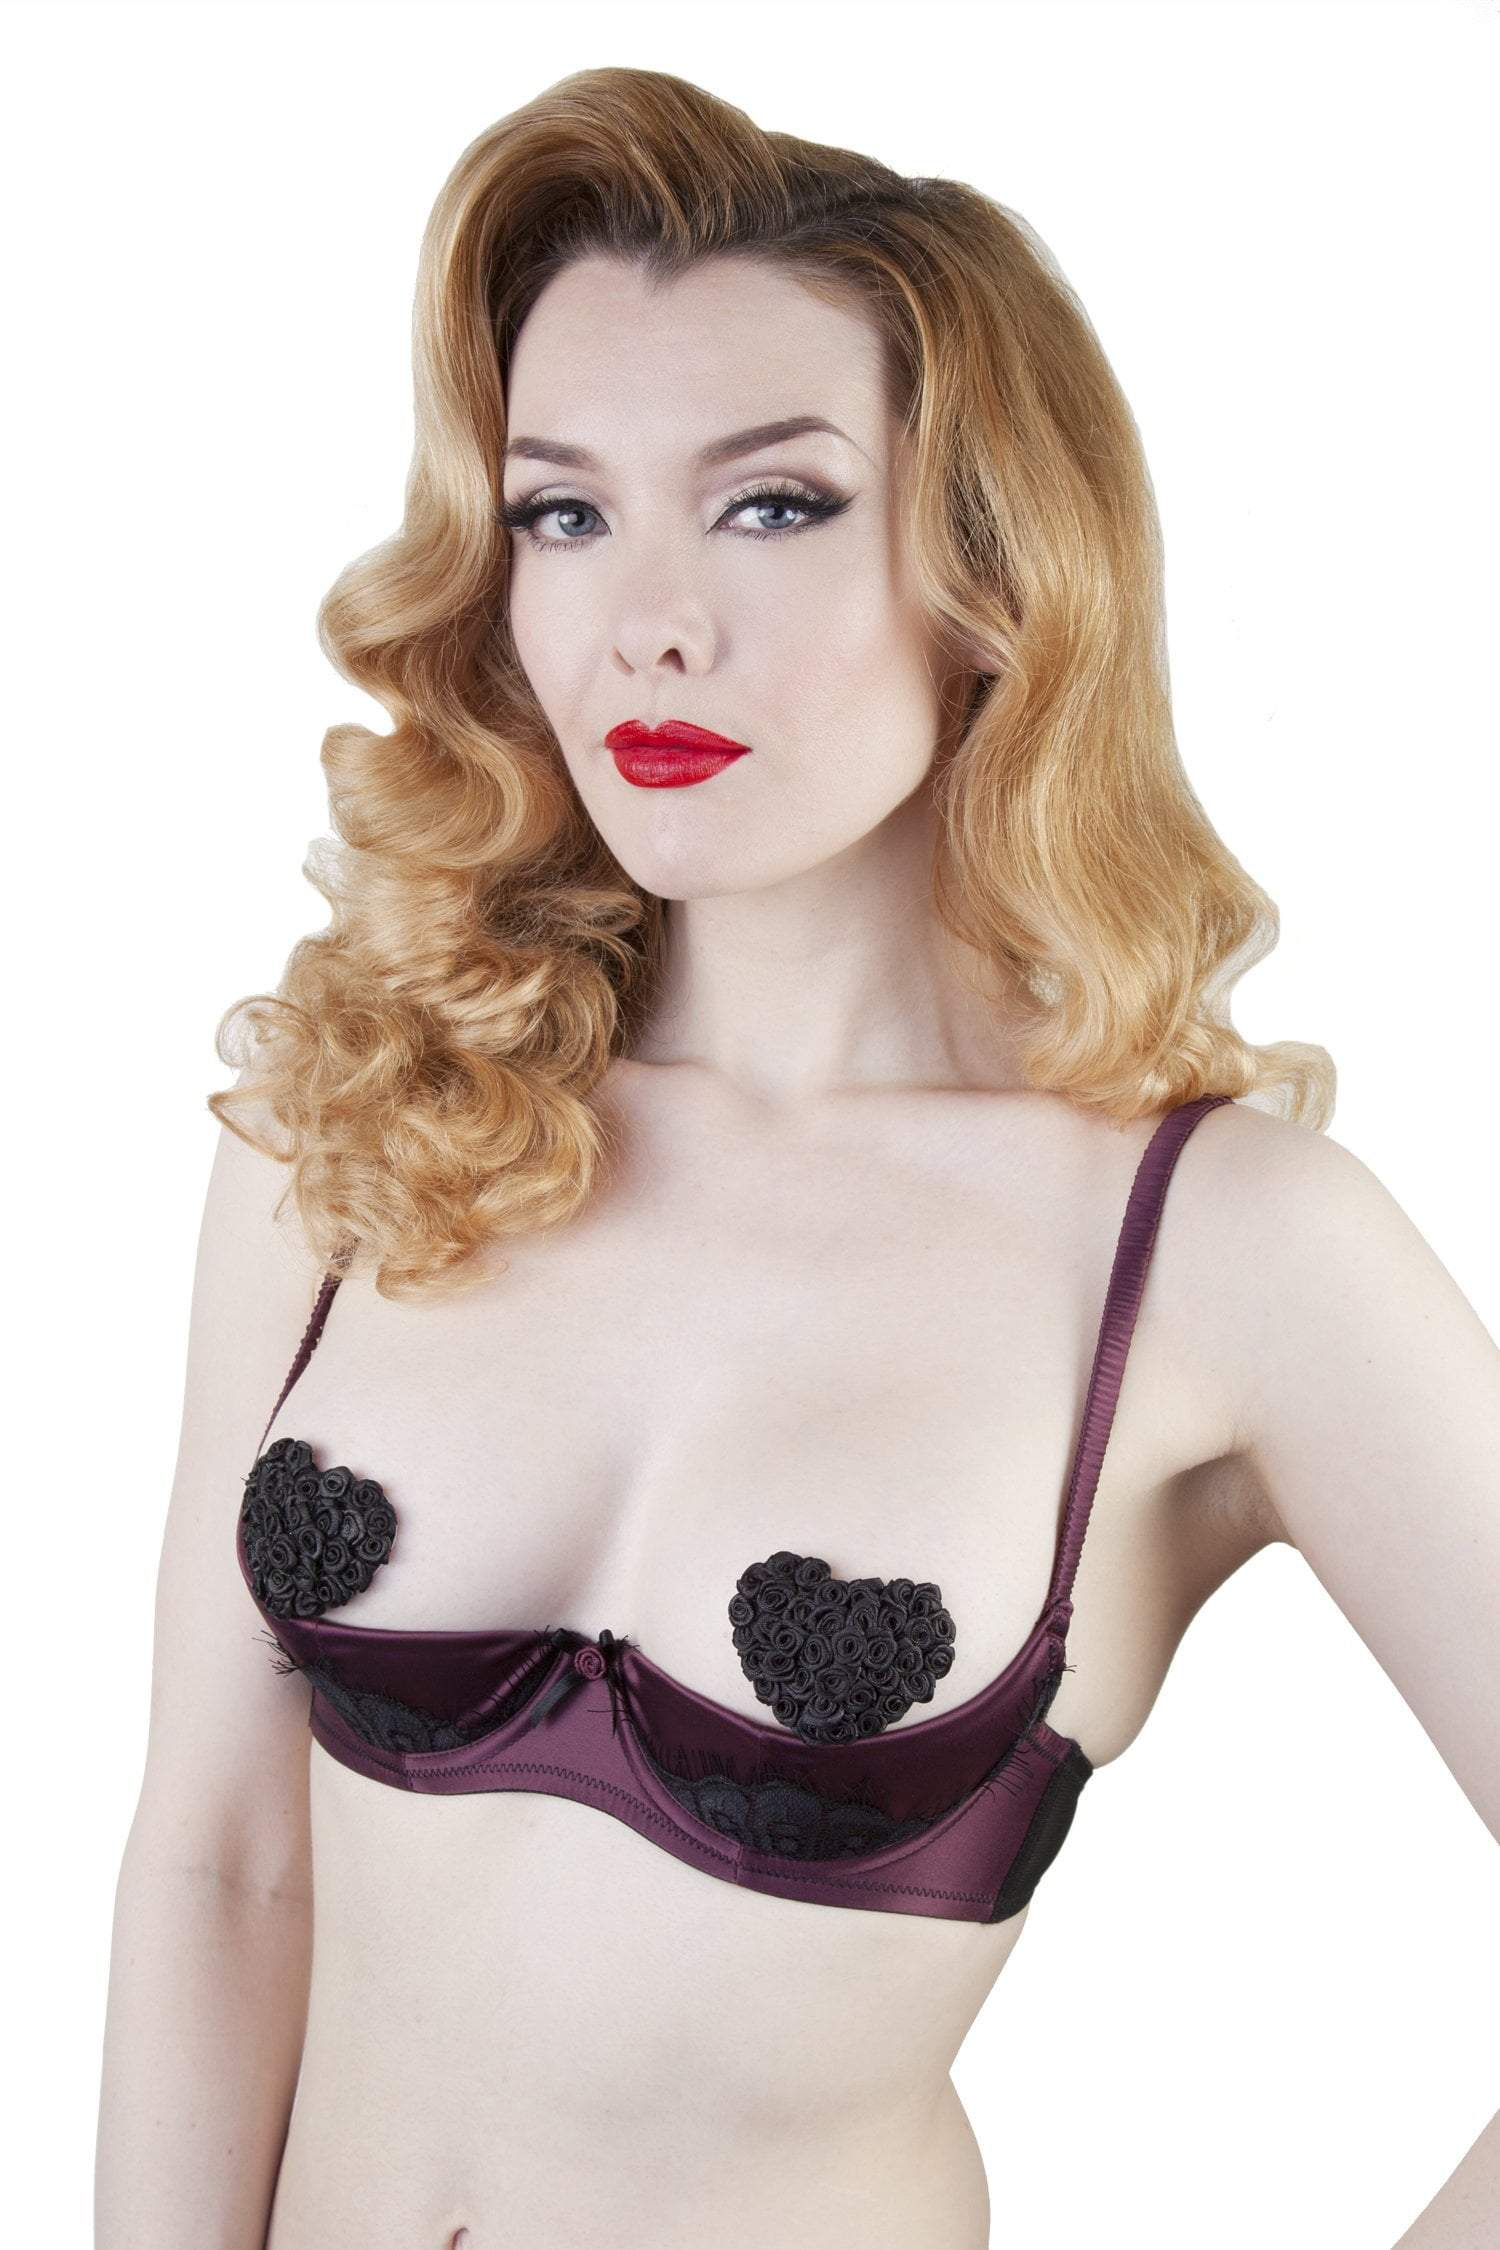 605abe01a4169 Marlene Wine 1/4 Cup Bra with Lace A-D Cups - Playful Promises